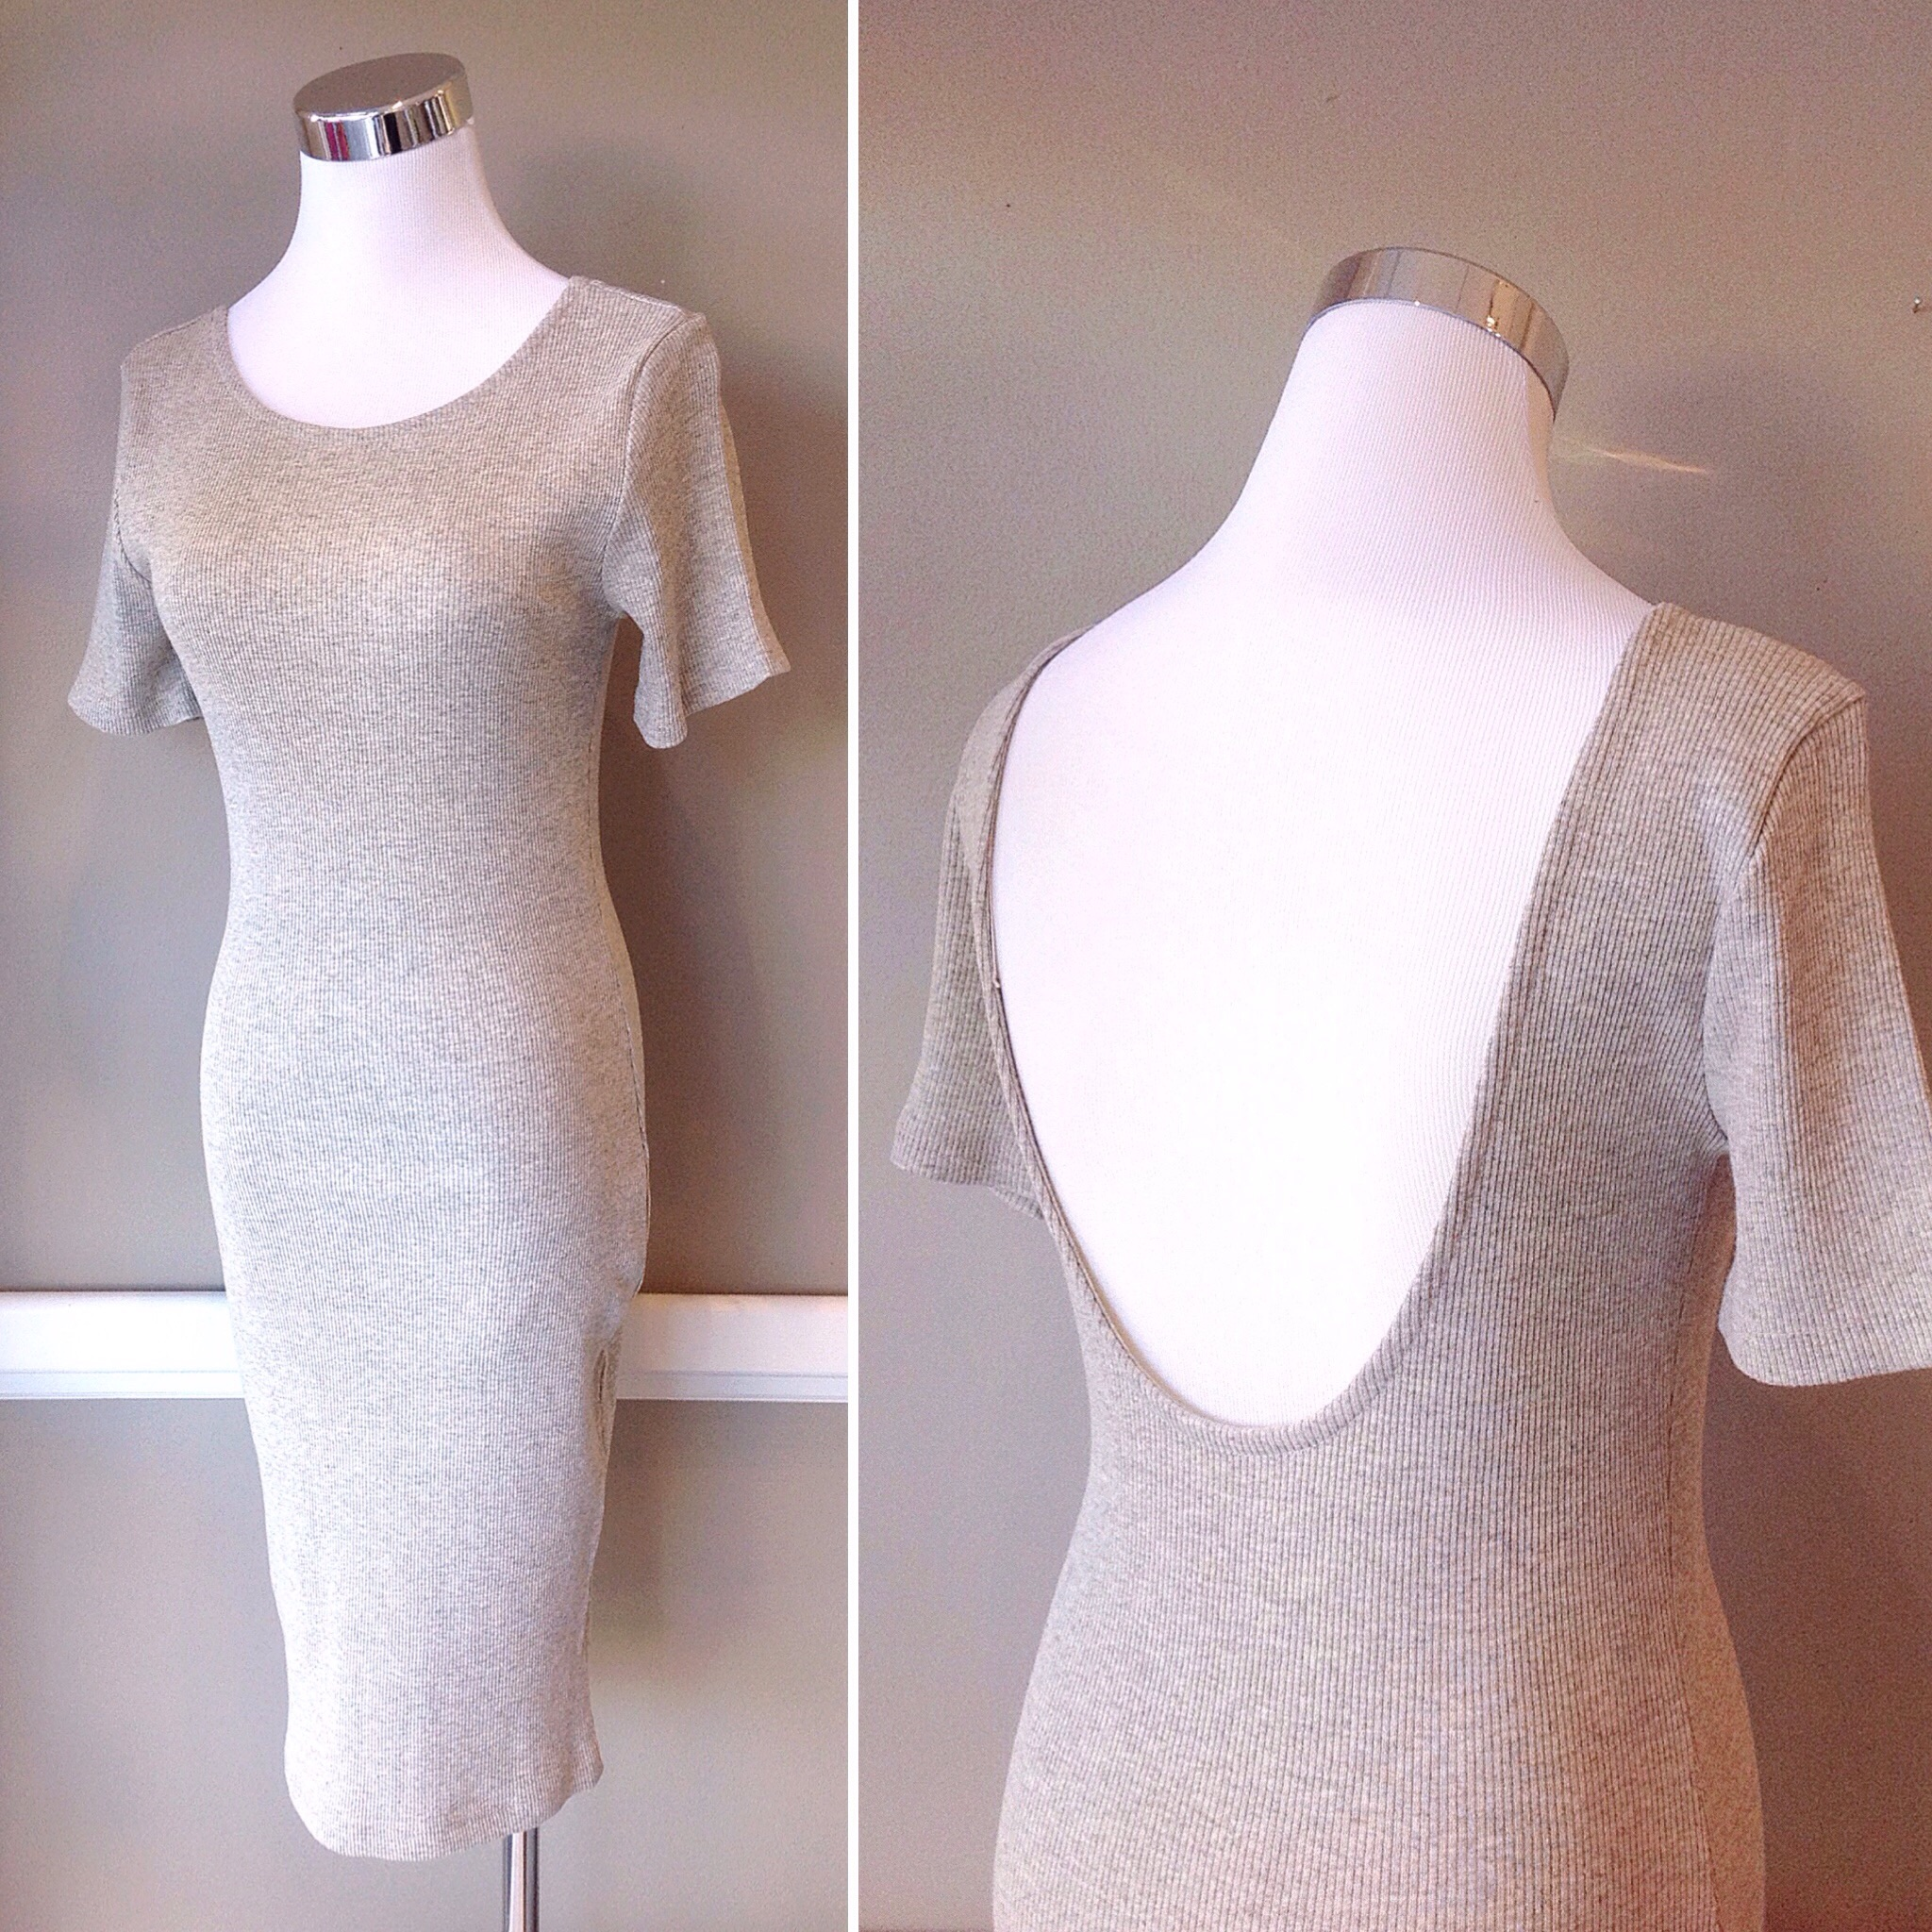 Oatmeal ribbed bodycon dress with scoop back, $35